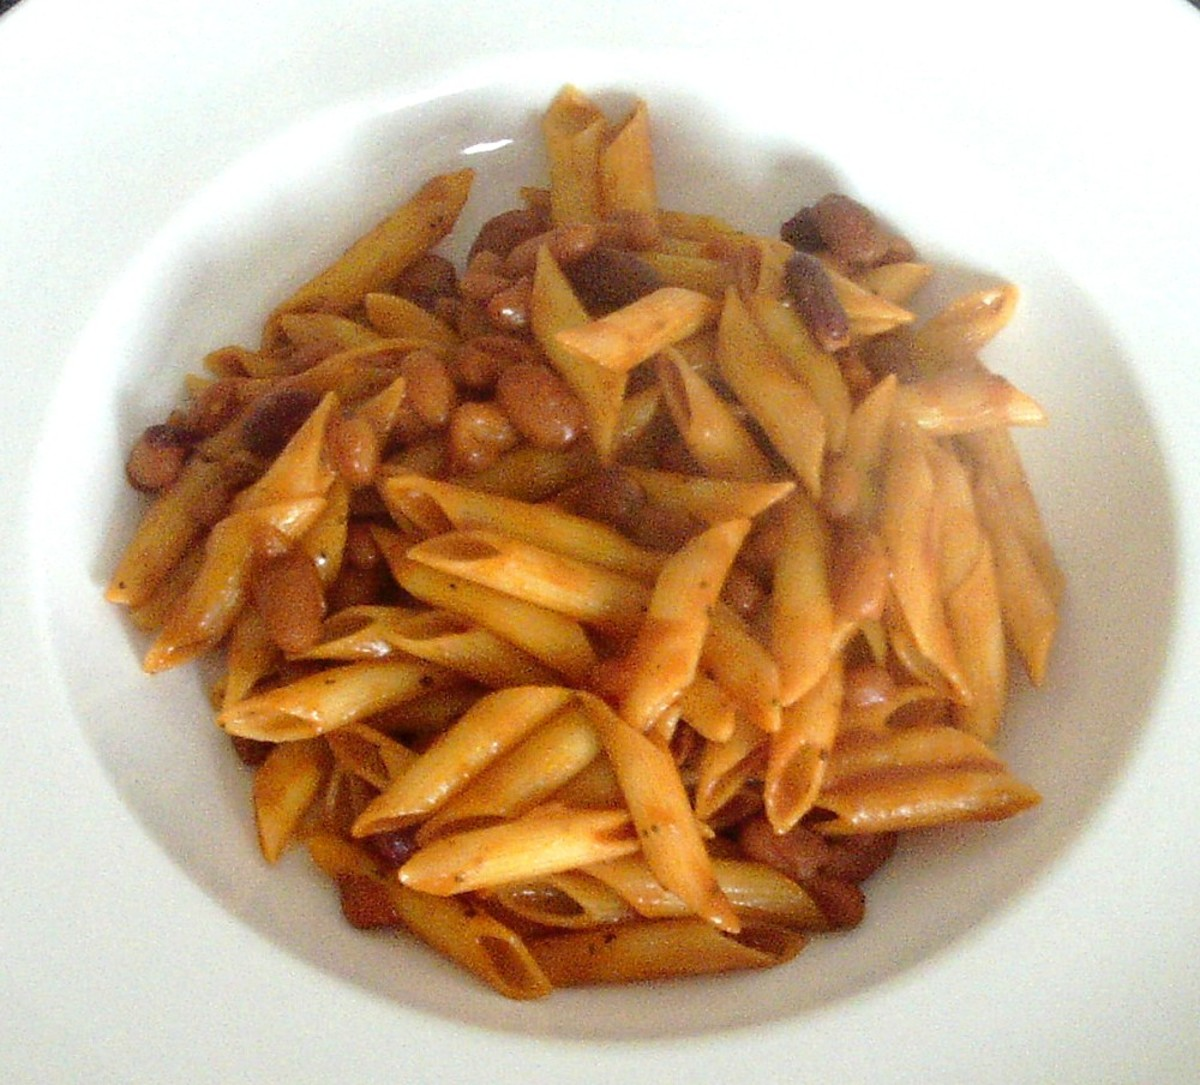 Penne pasta in five beans tomato sauce